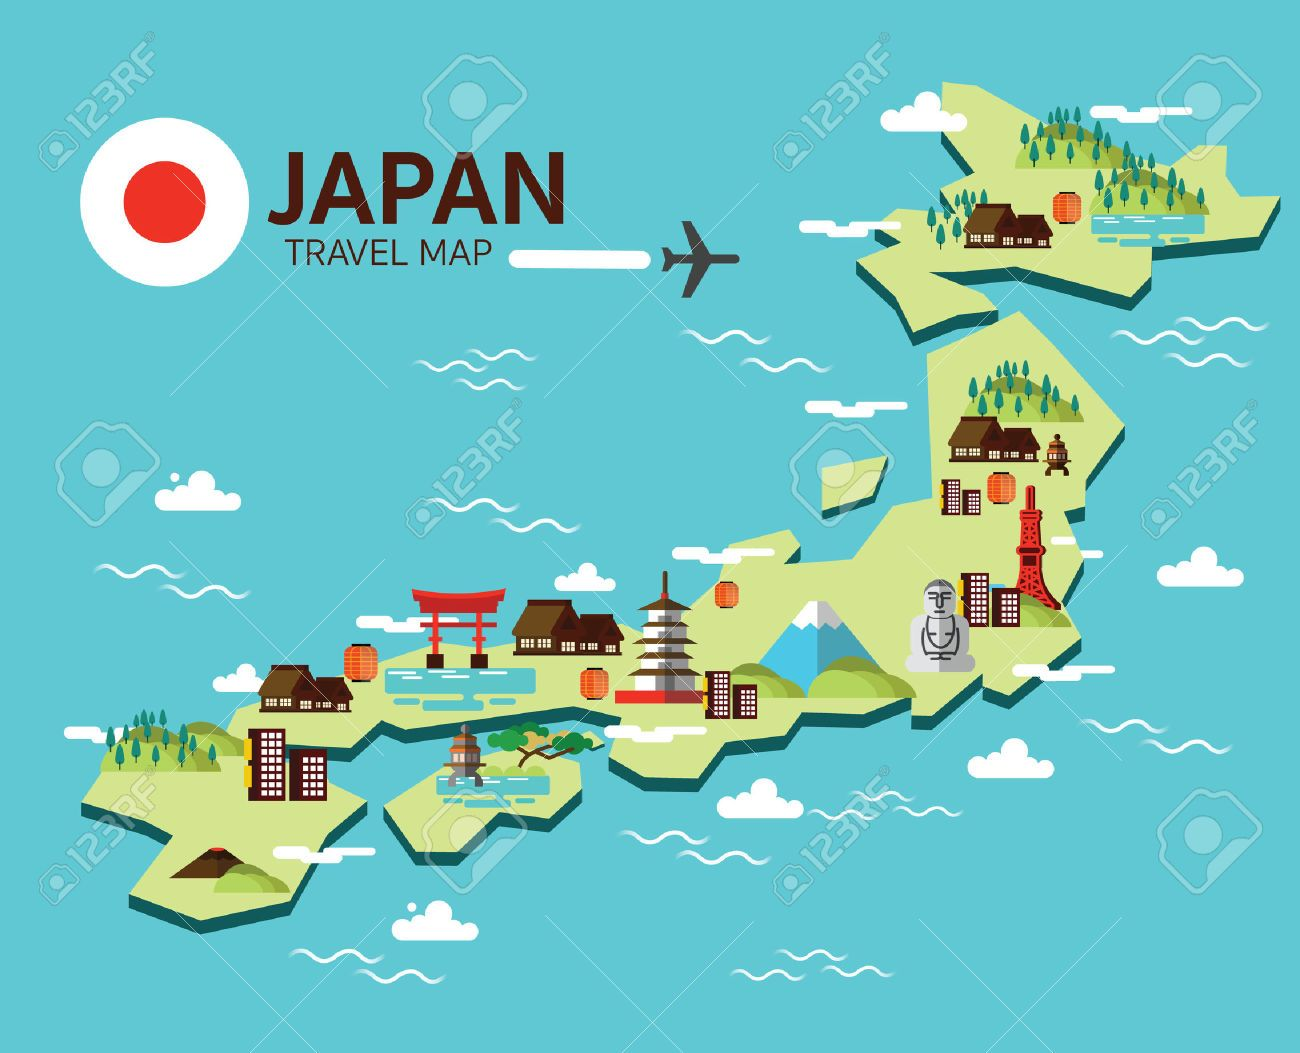 Japan clipart. Travel map cliparts stock